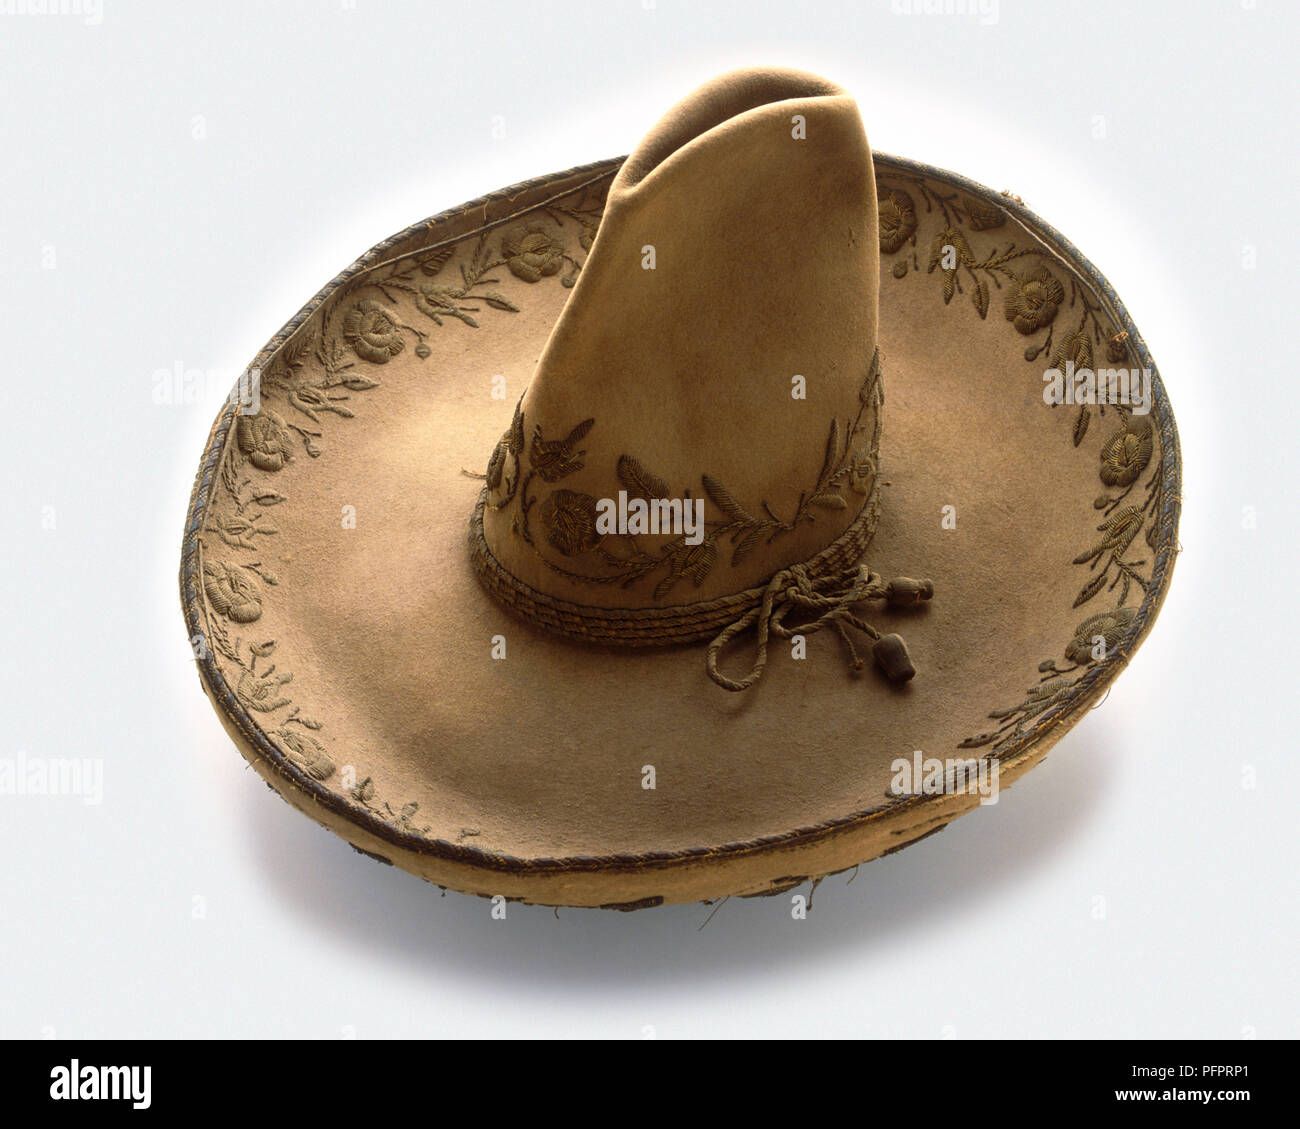 Sombrero with embroidery, 19th century - Stock Image